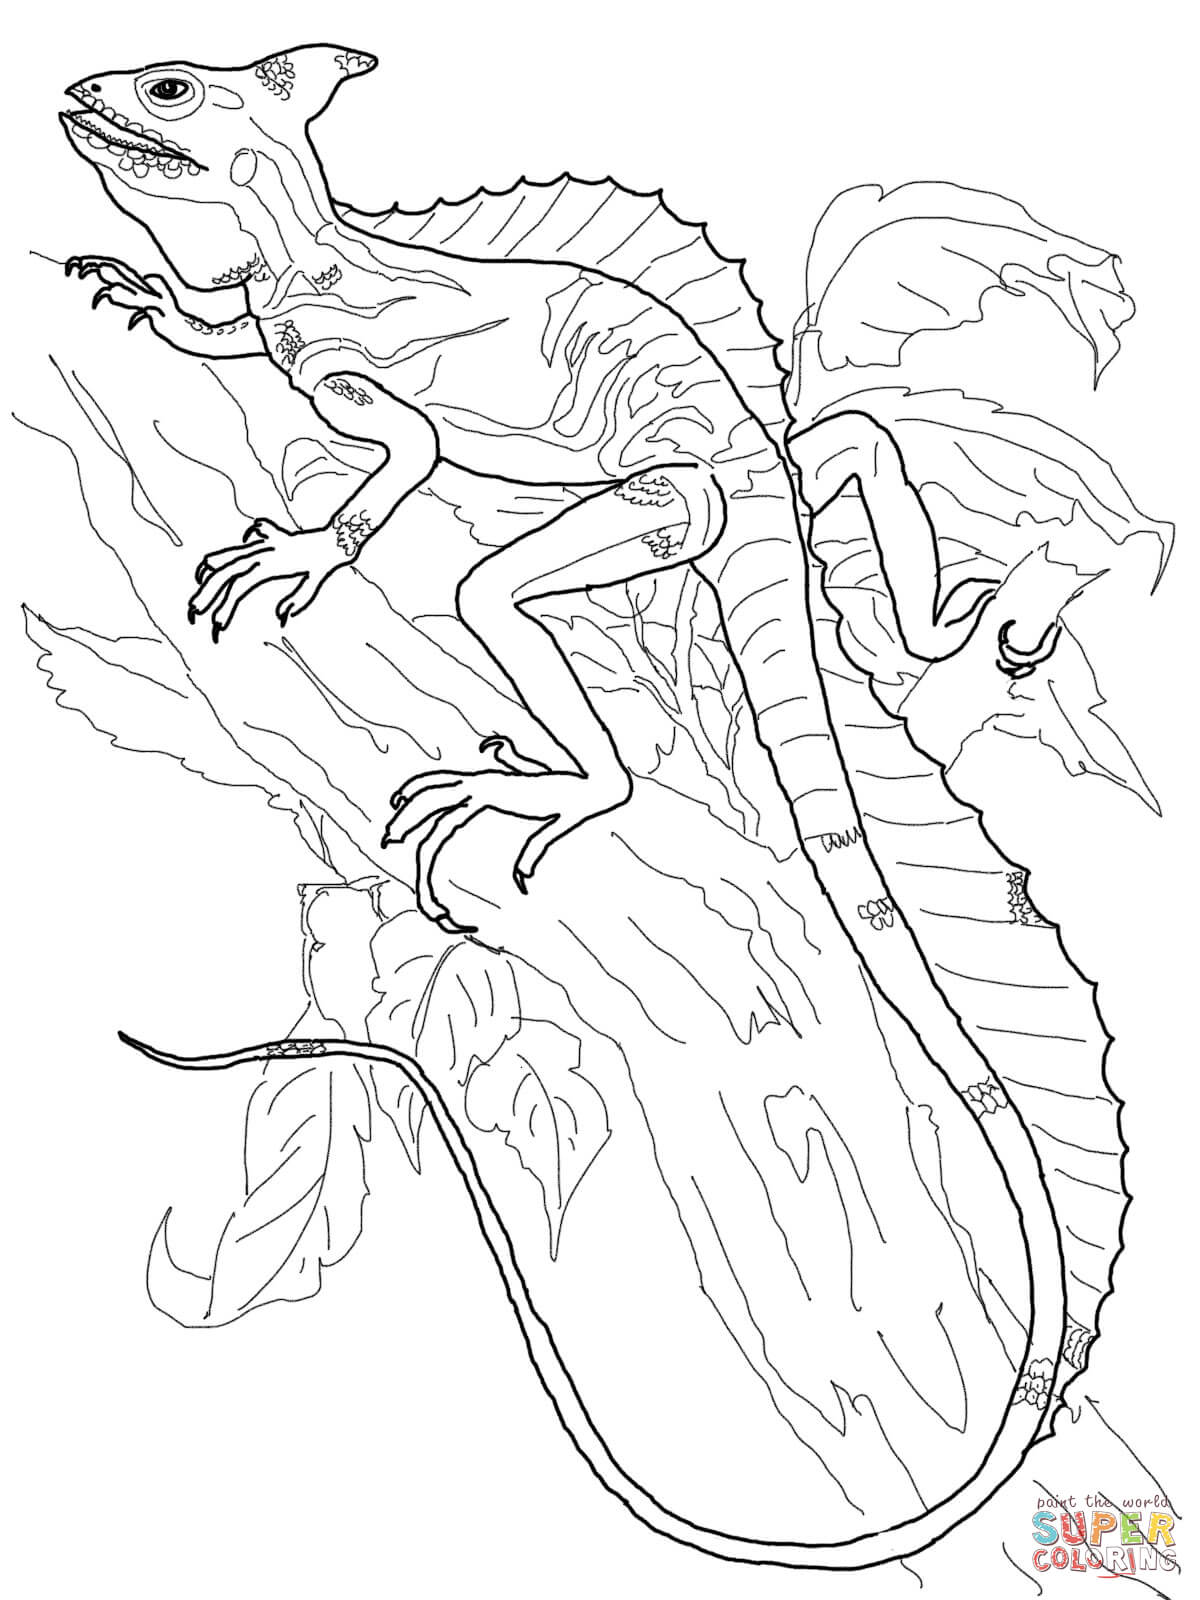 Monitor lizard coloring pages download and print for free for Lizard coloring pages